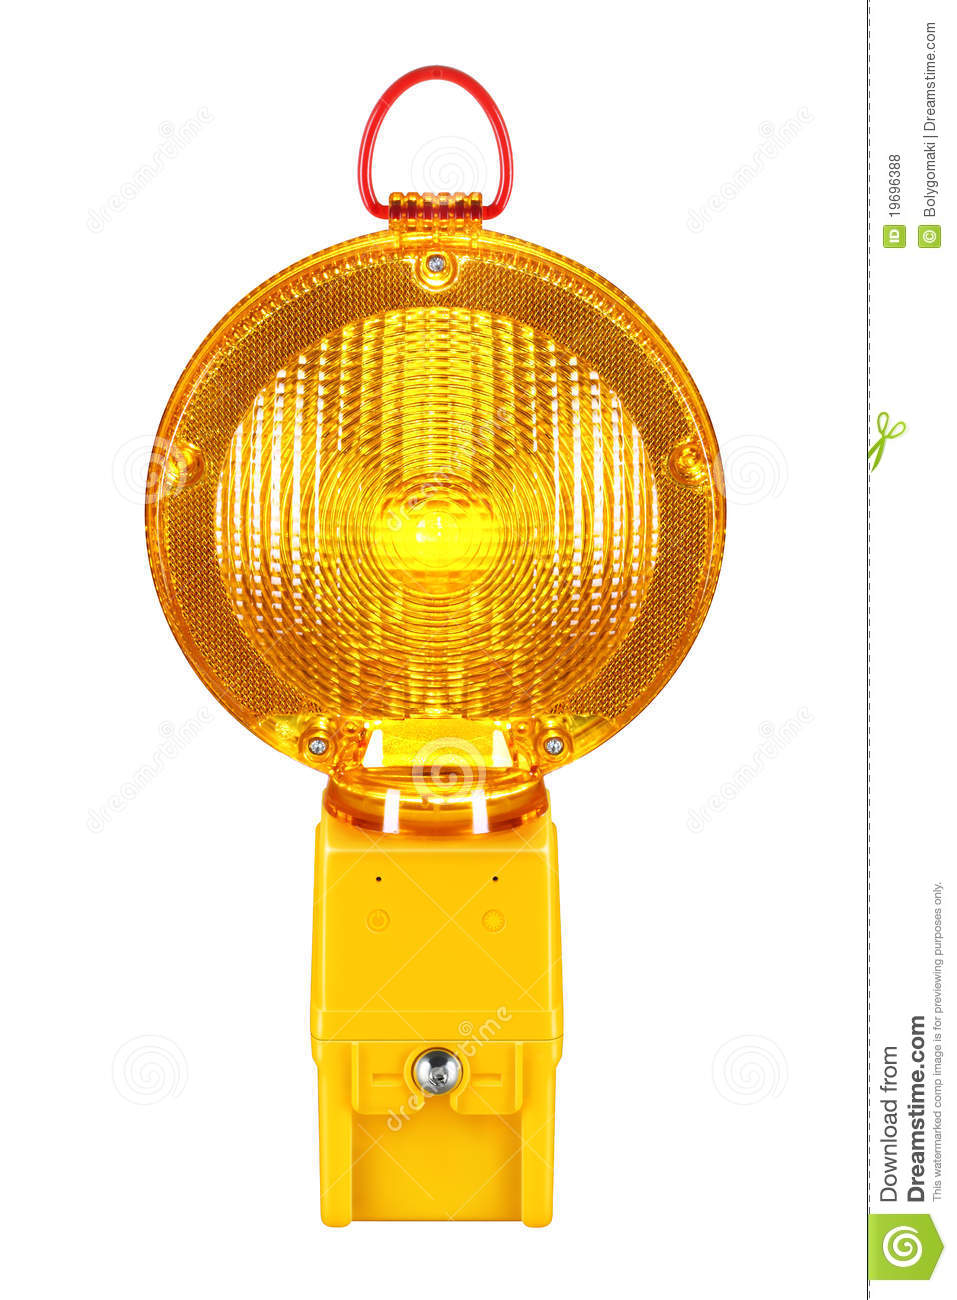 Lampe de danger de route photo stock image du attention 19696388 - Lampe de sel danger ...